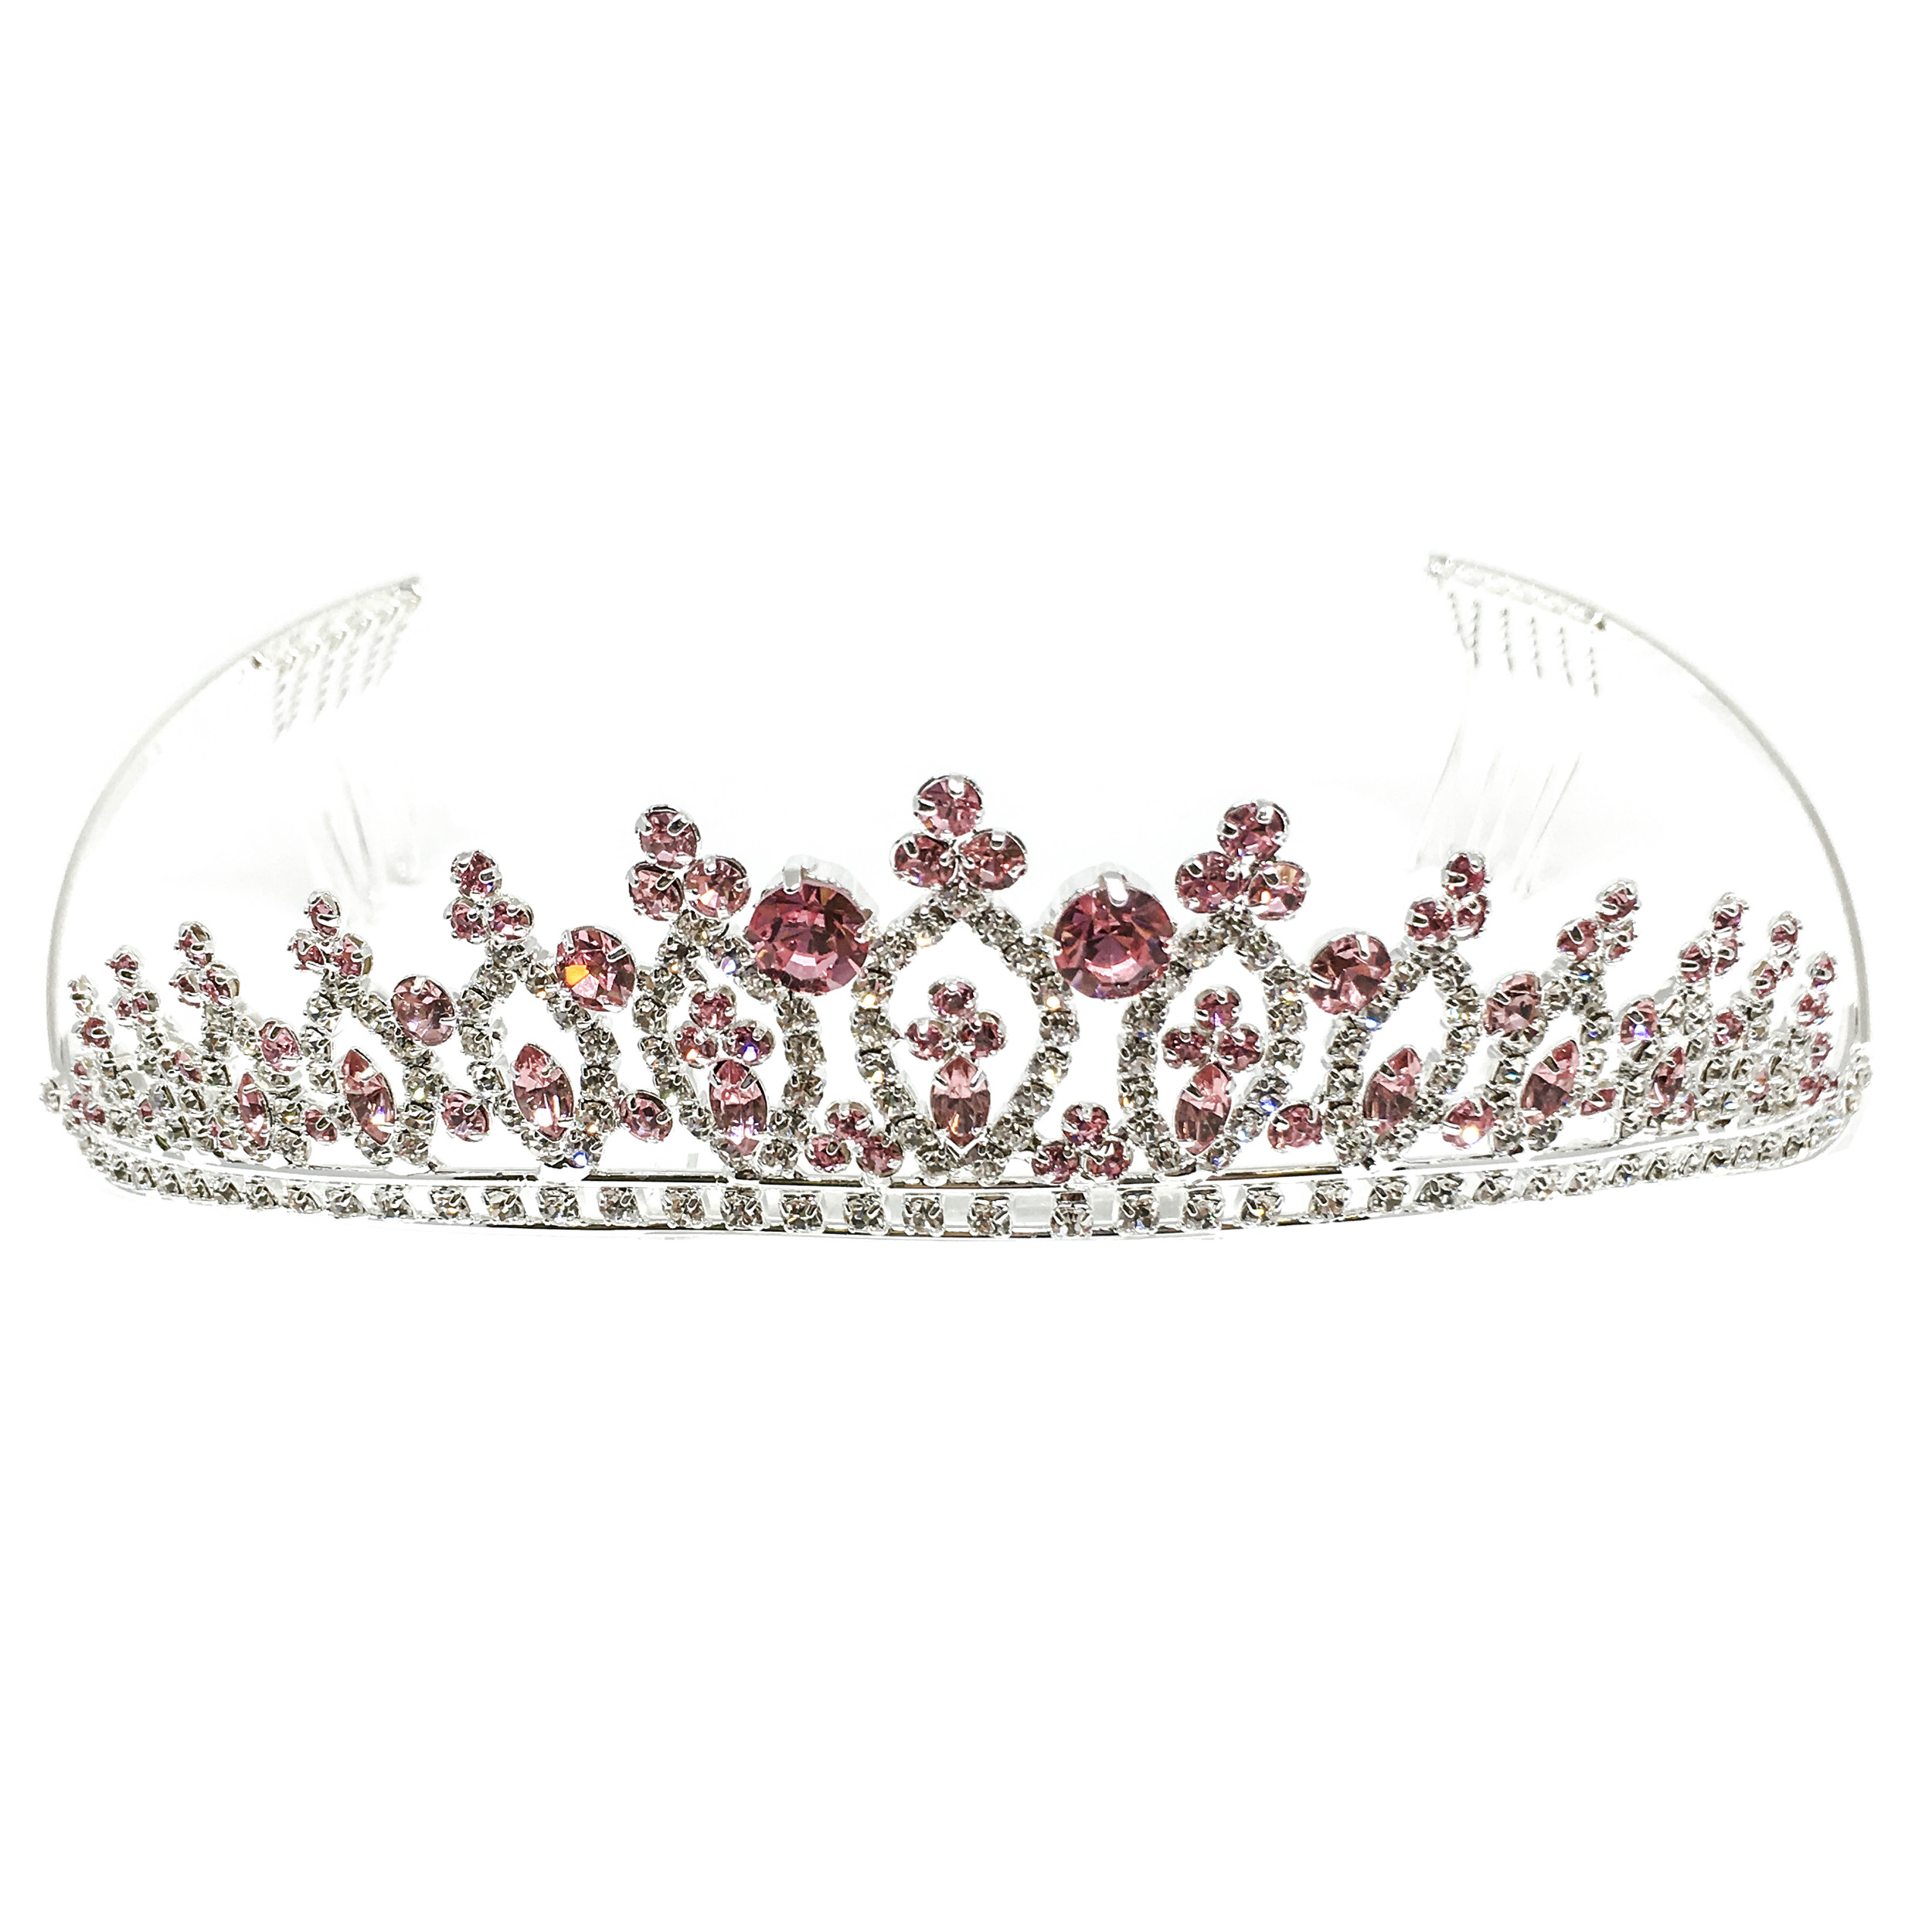 Kate Marie CWN-DH1900 Rhinestone Crown Tiara Headband in Silver